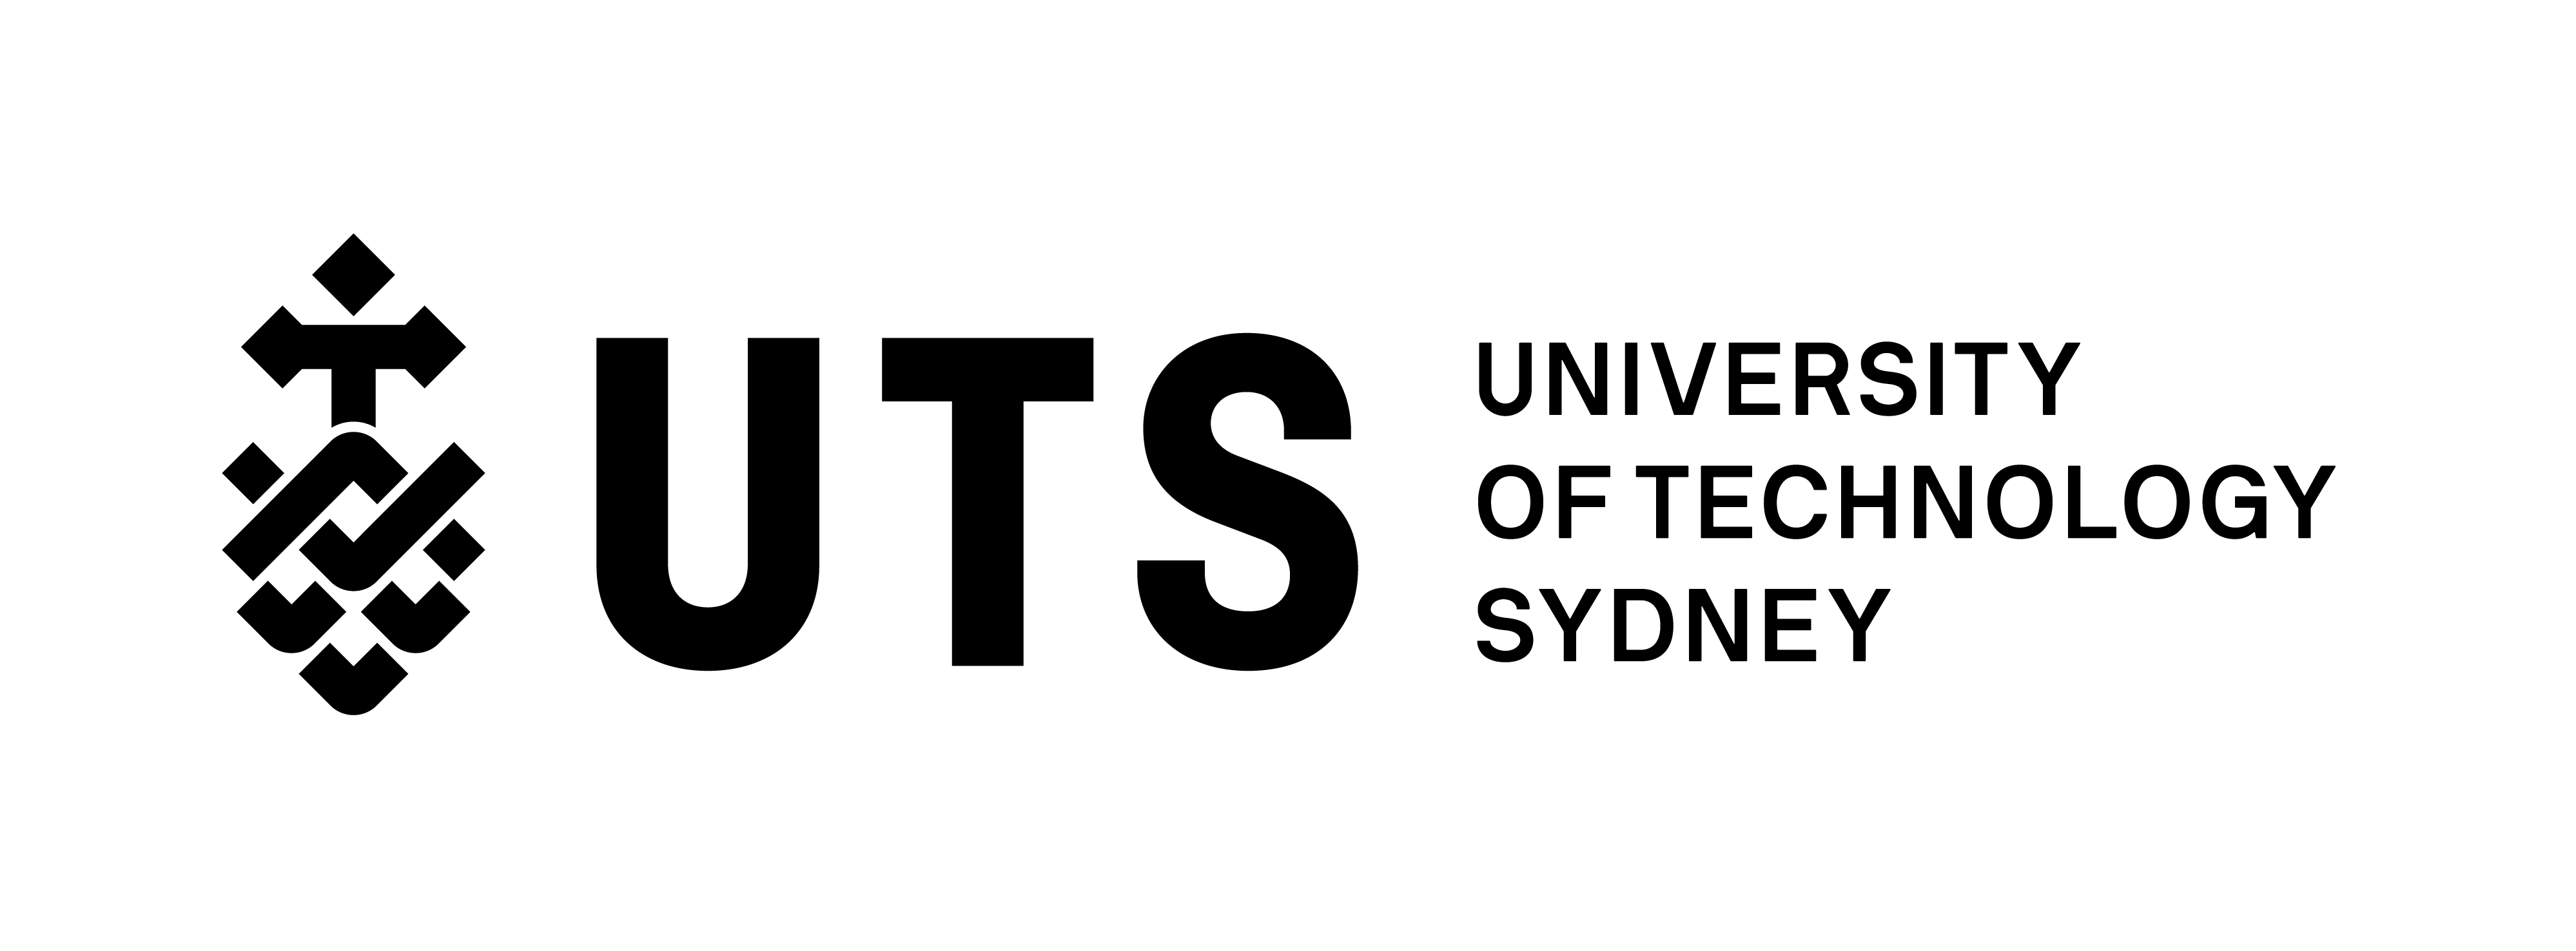 University of Technology Sydney - Bachelor of Forensic Science / Bachelor of Creative Intelligence and Innovation